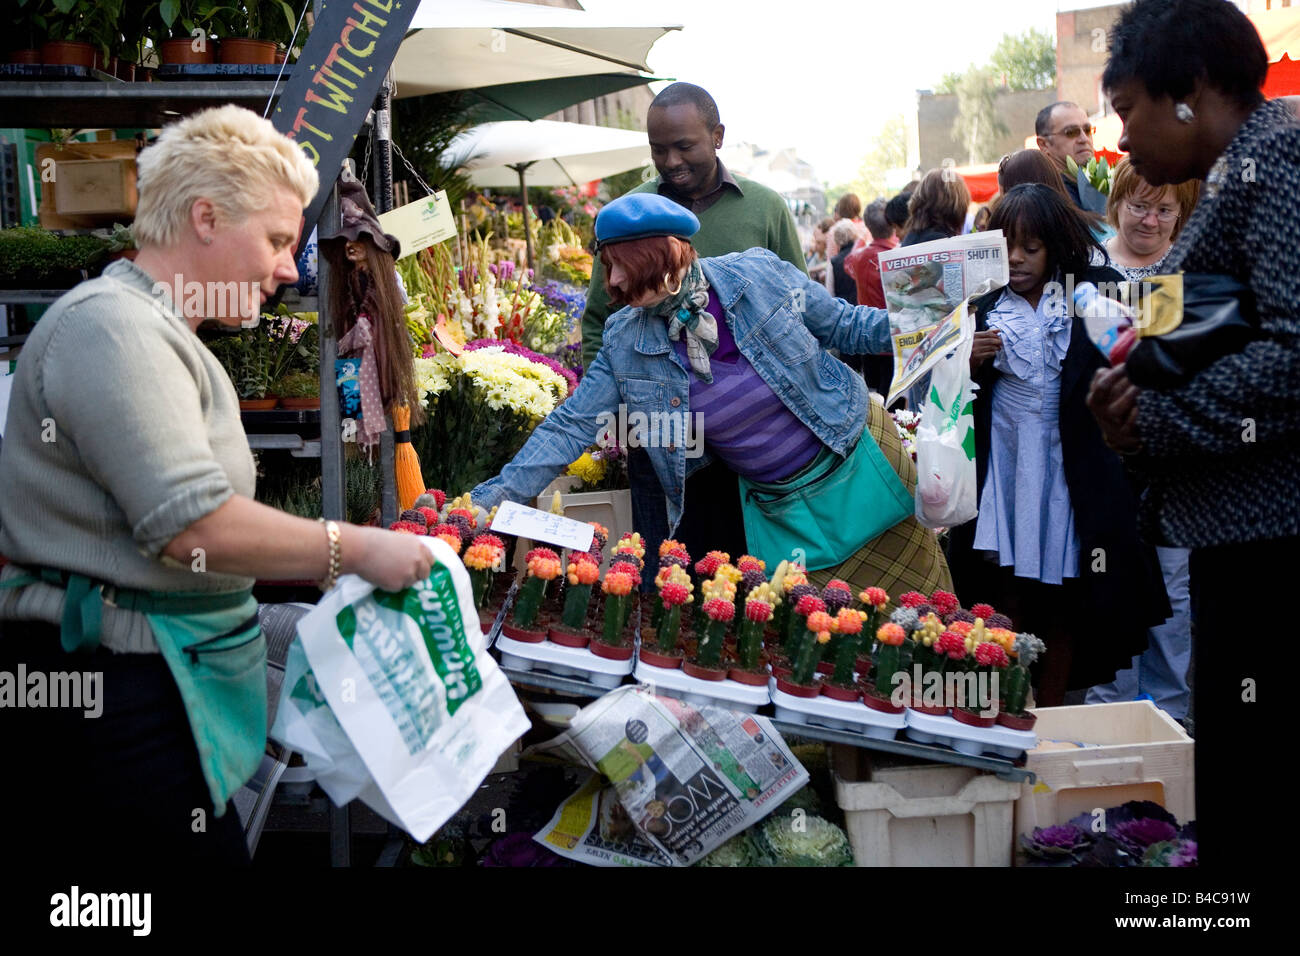 Colombia Road flower market on a Sunday morning, Bethnal Green, East London - Stock Image